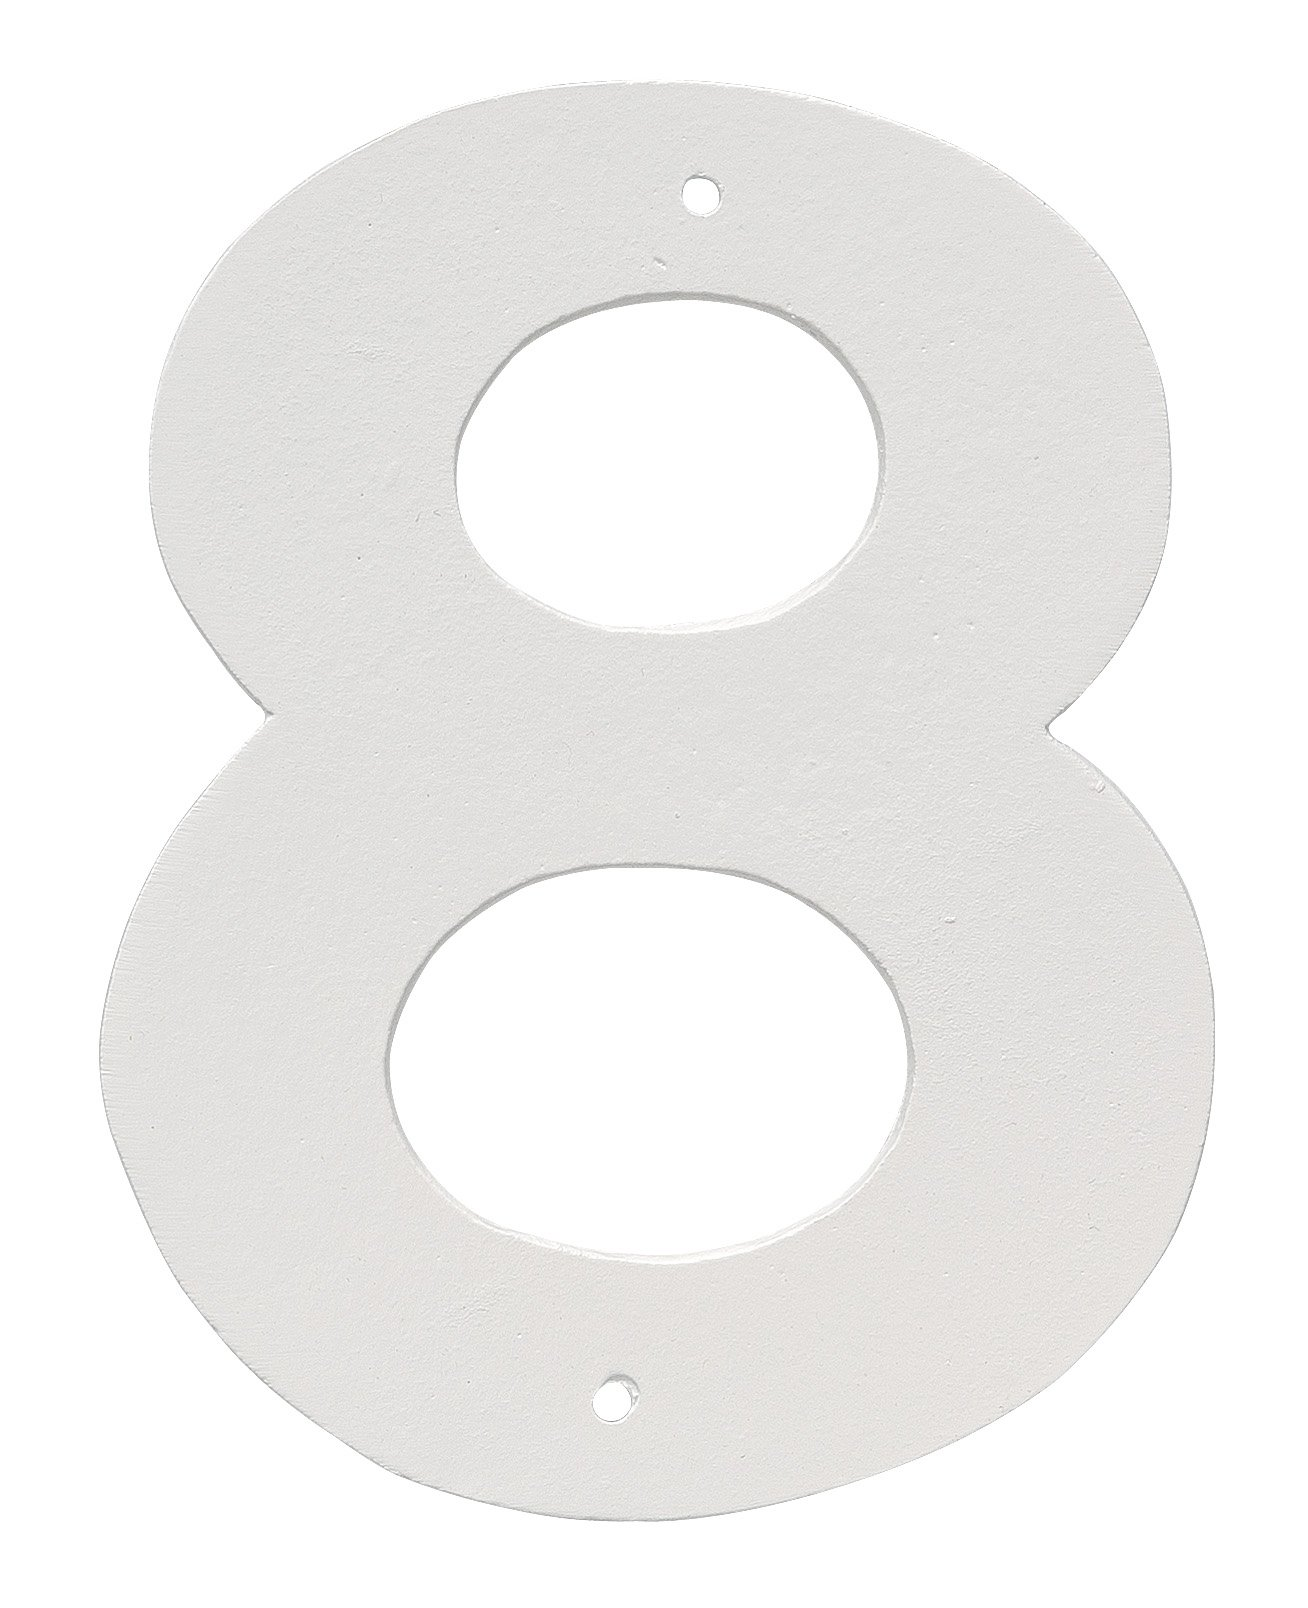 Montague Metal Products 8'' Aluminum House Number 8 Outdoor Plaque, Medium, White